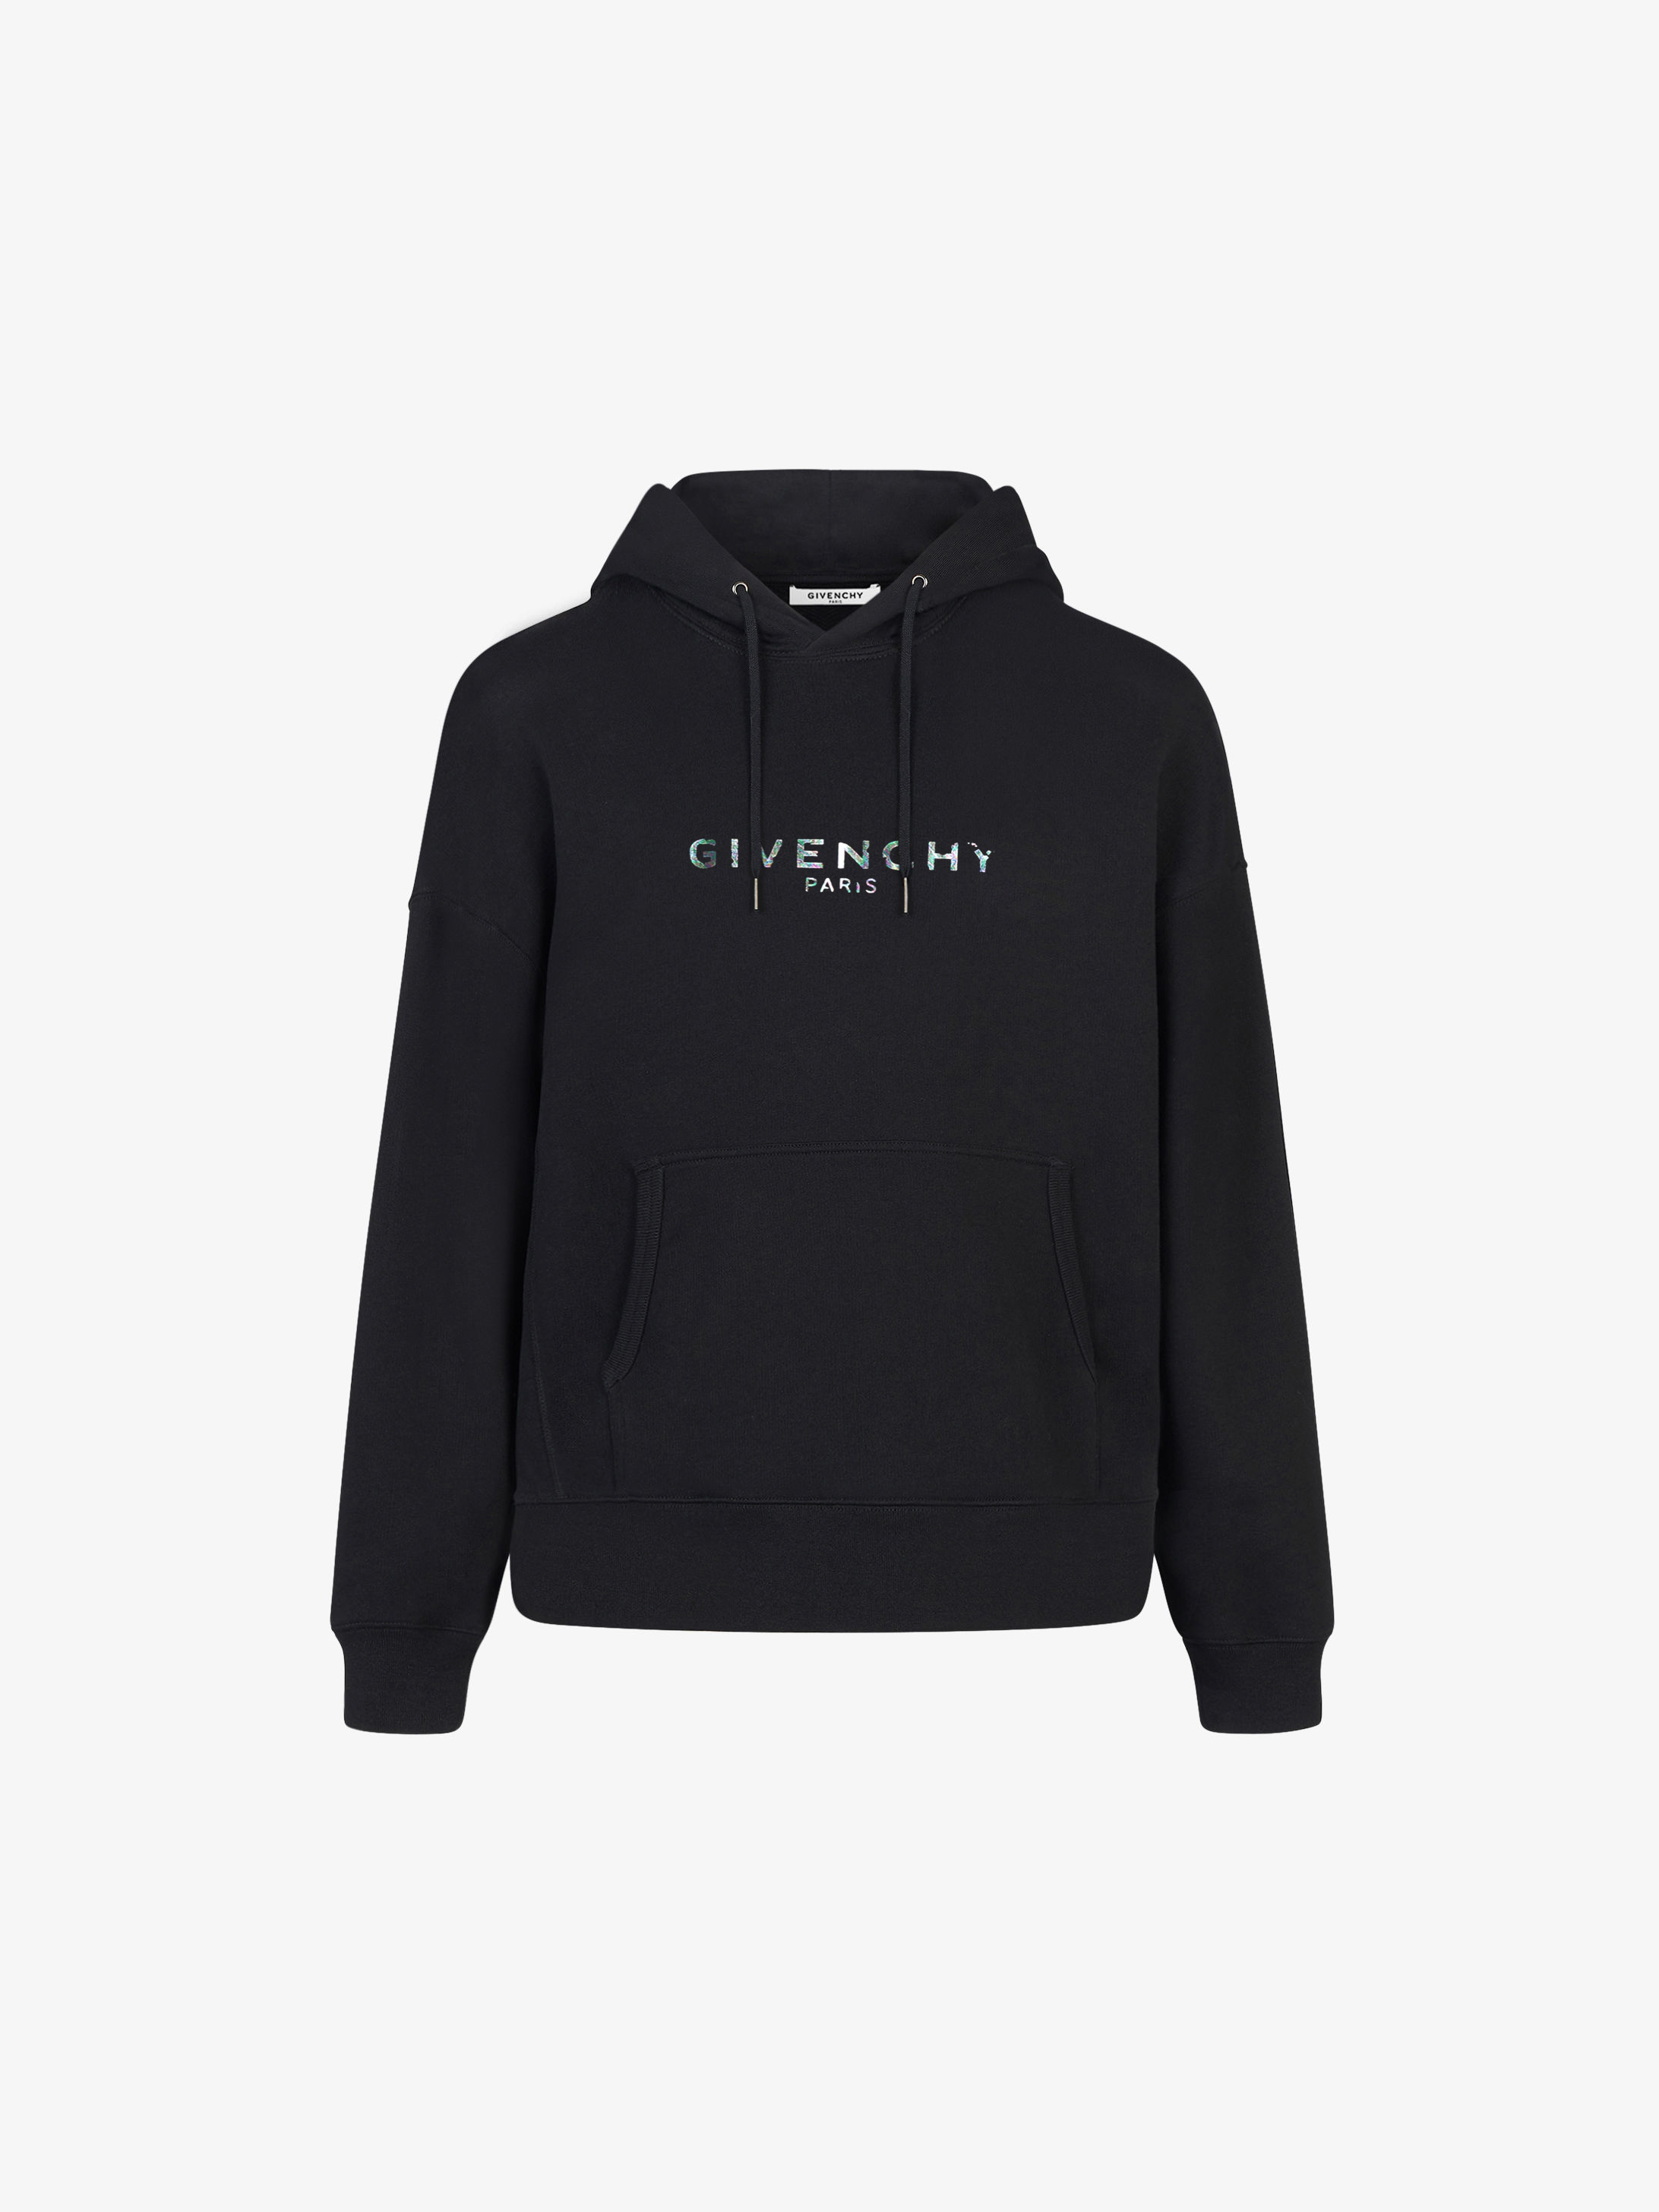 GIVENCHY PARIS iridescent hoodie